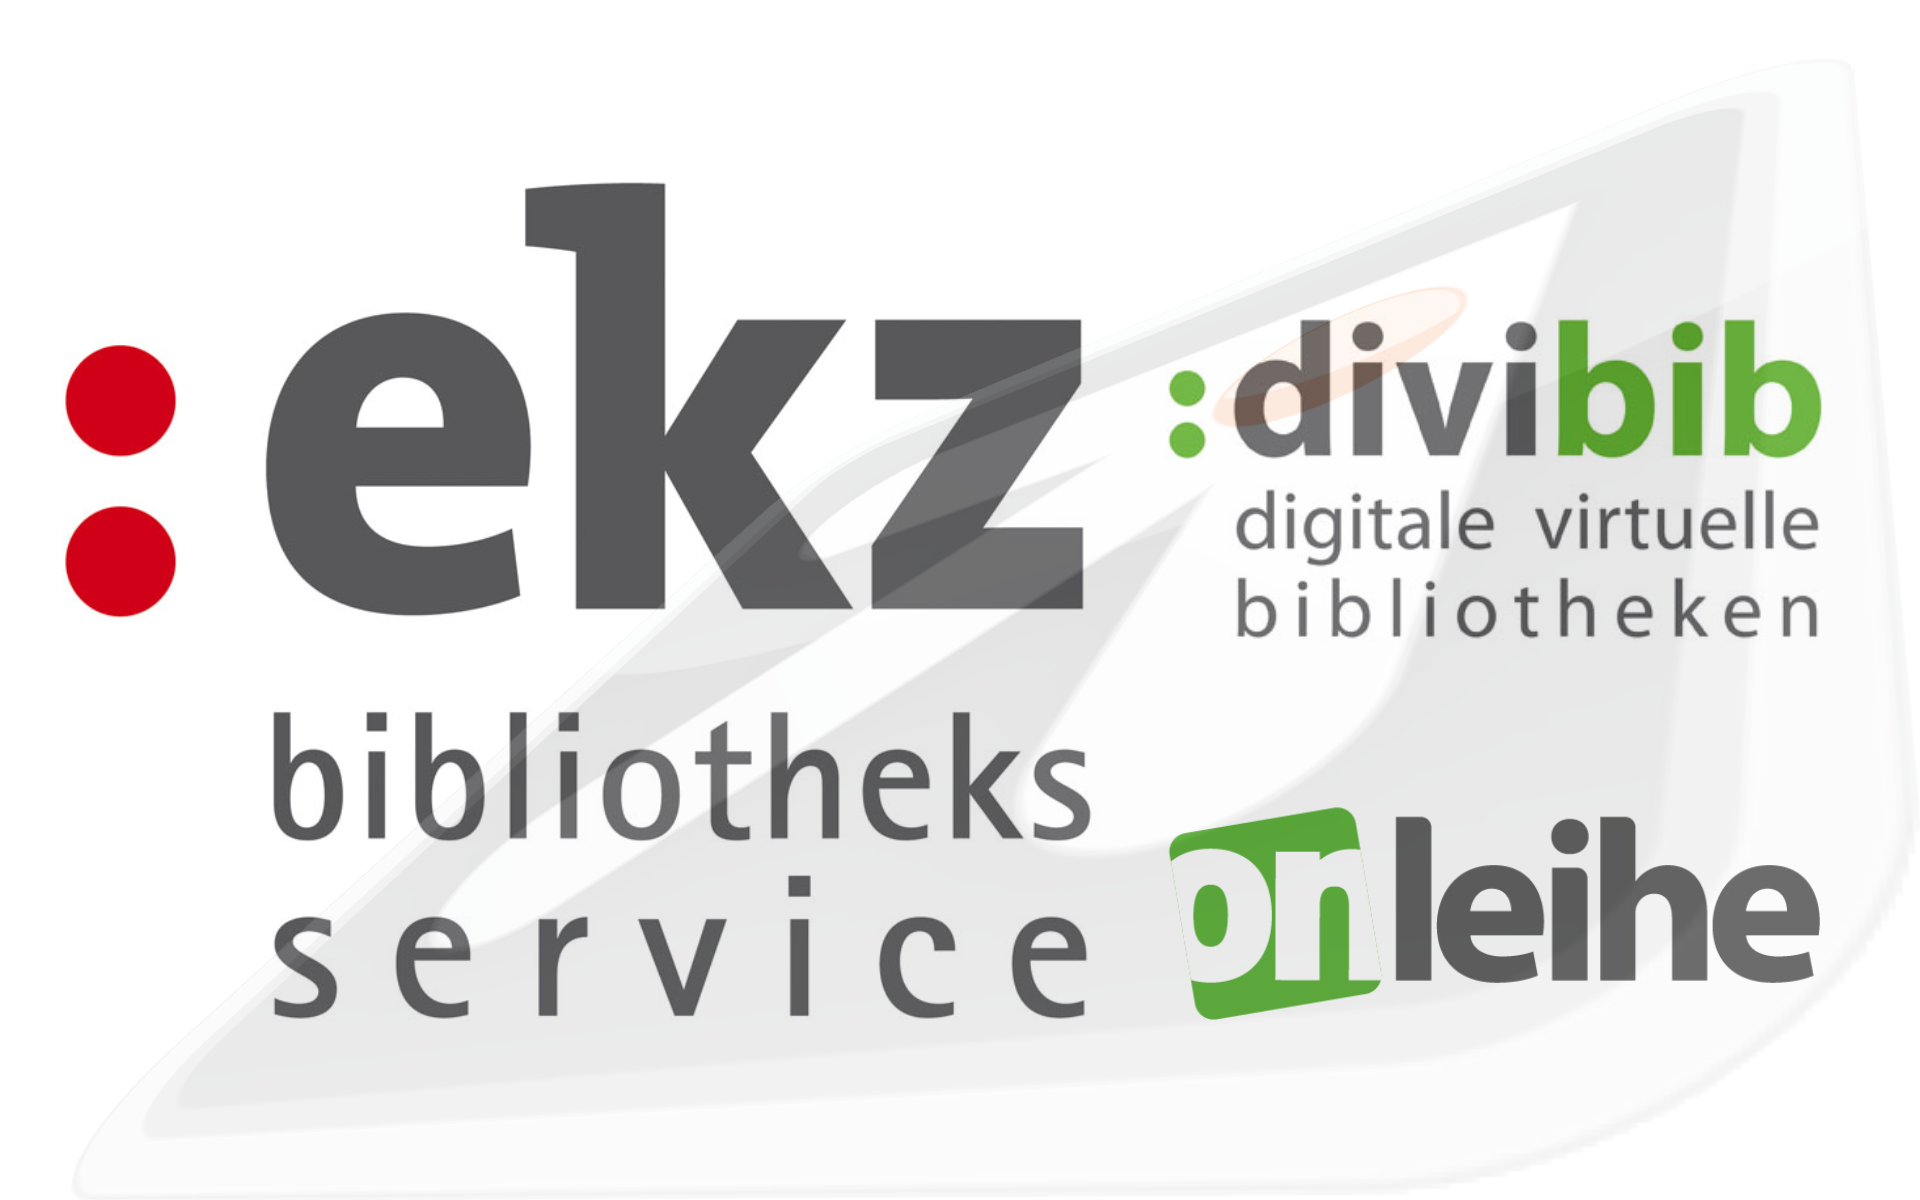 ekz Bibliotheksservice - divibib Digitale virtuelle Bibliotheken - Onleihe - Media & IT Maue